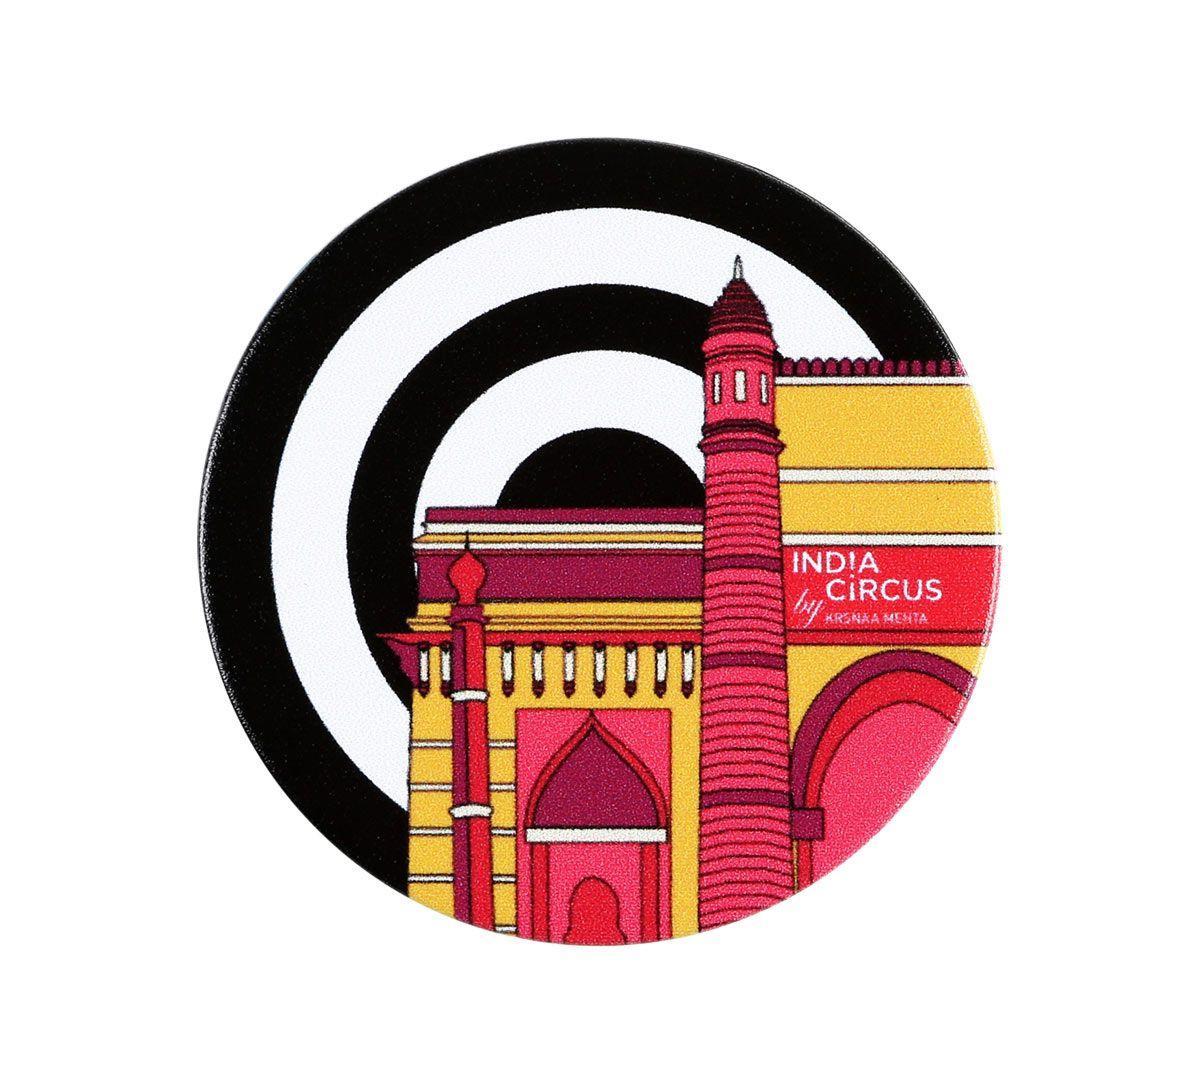 India Circus Monochromes and Monument Popsocket